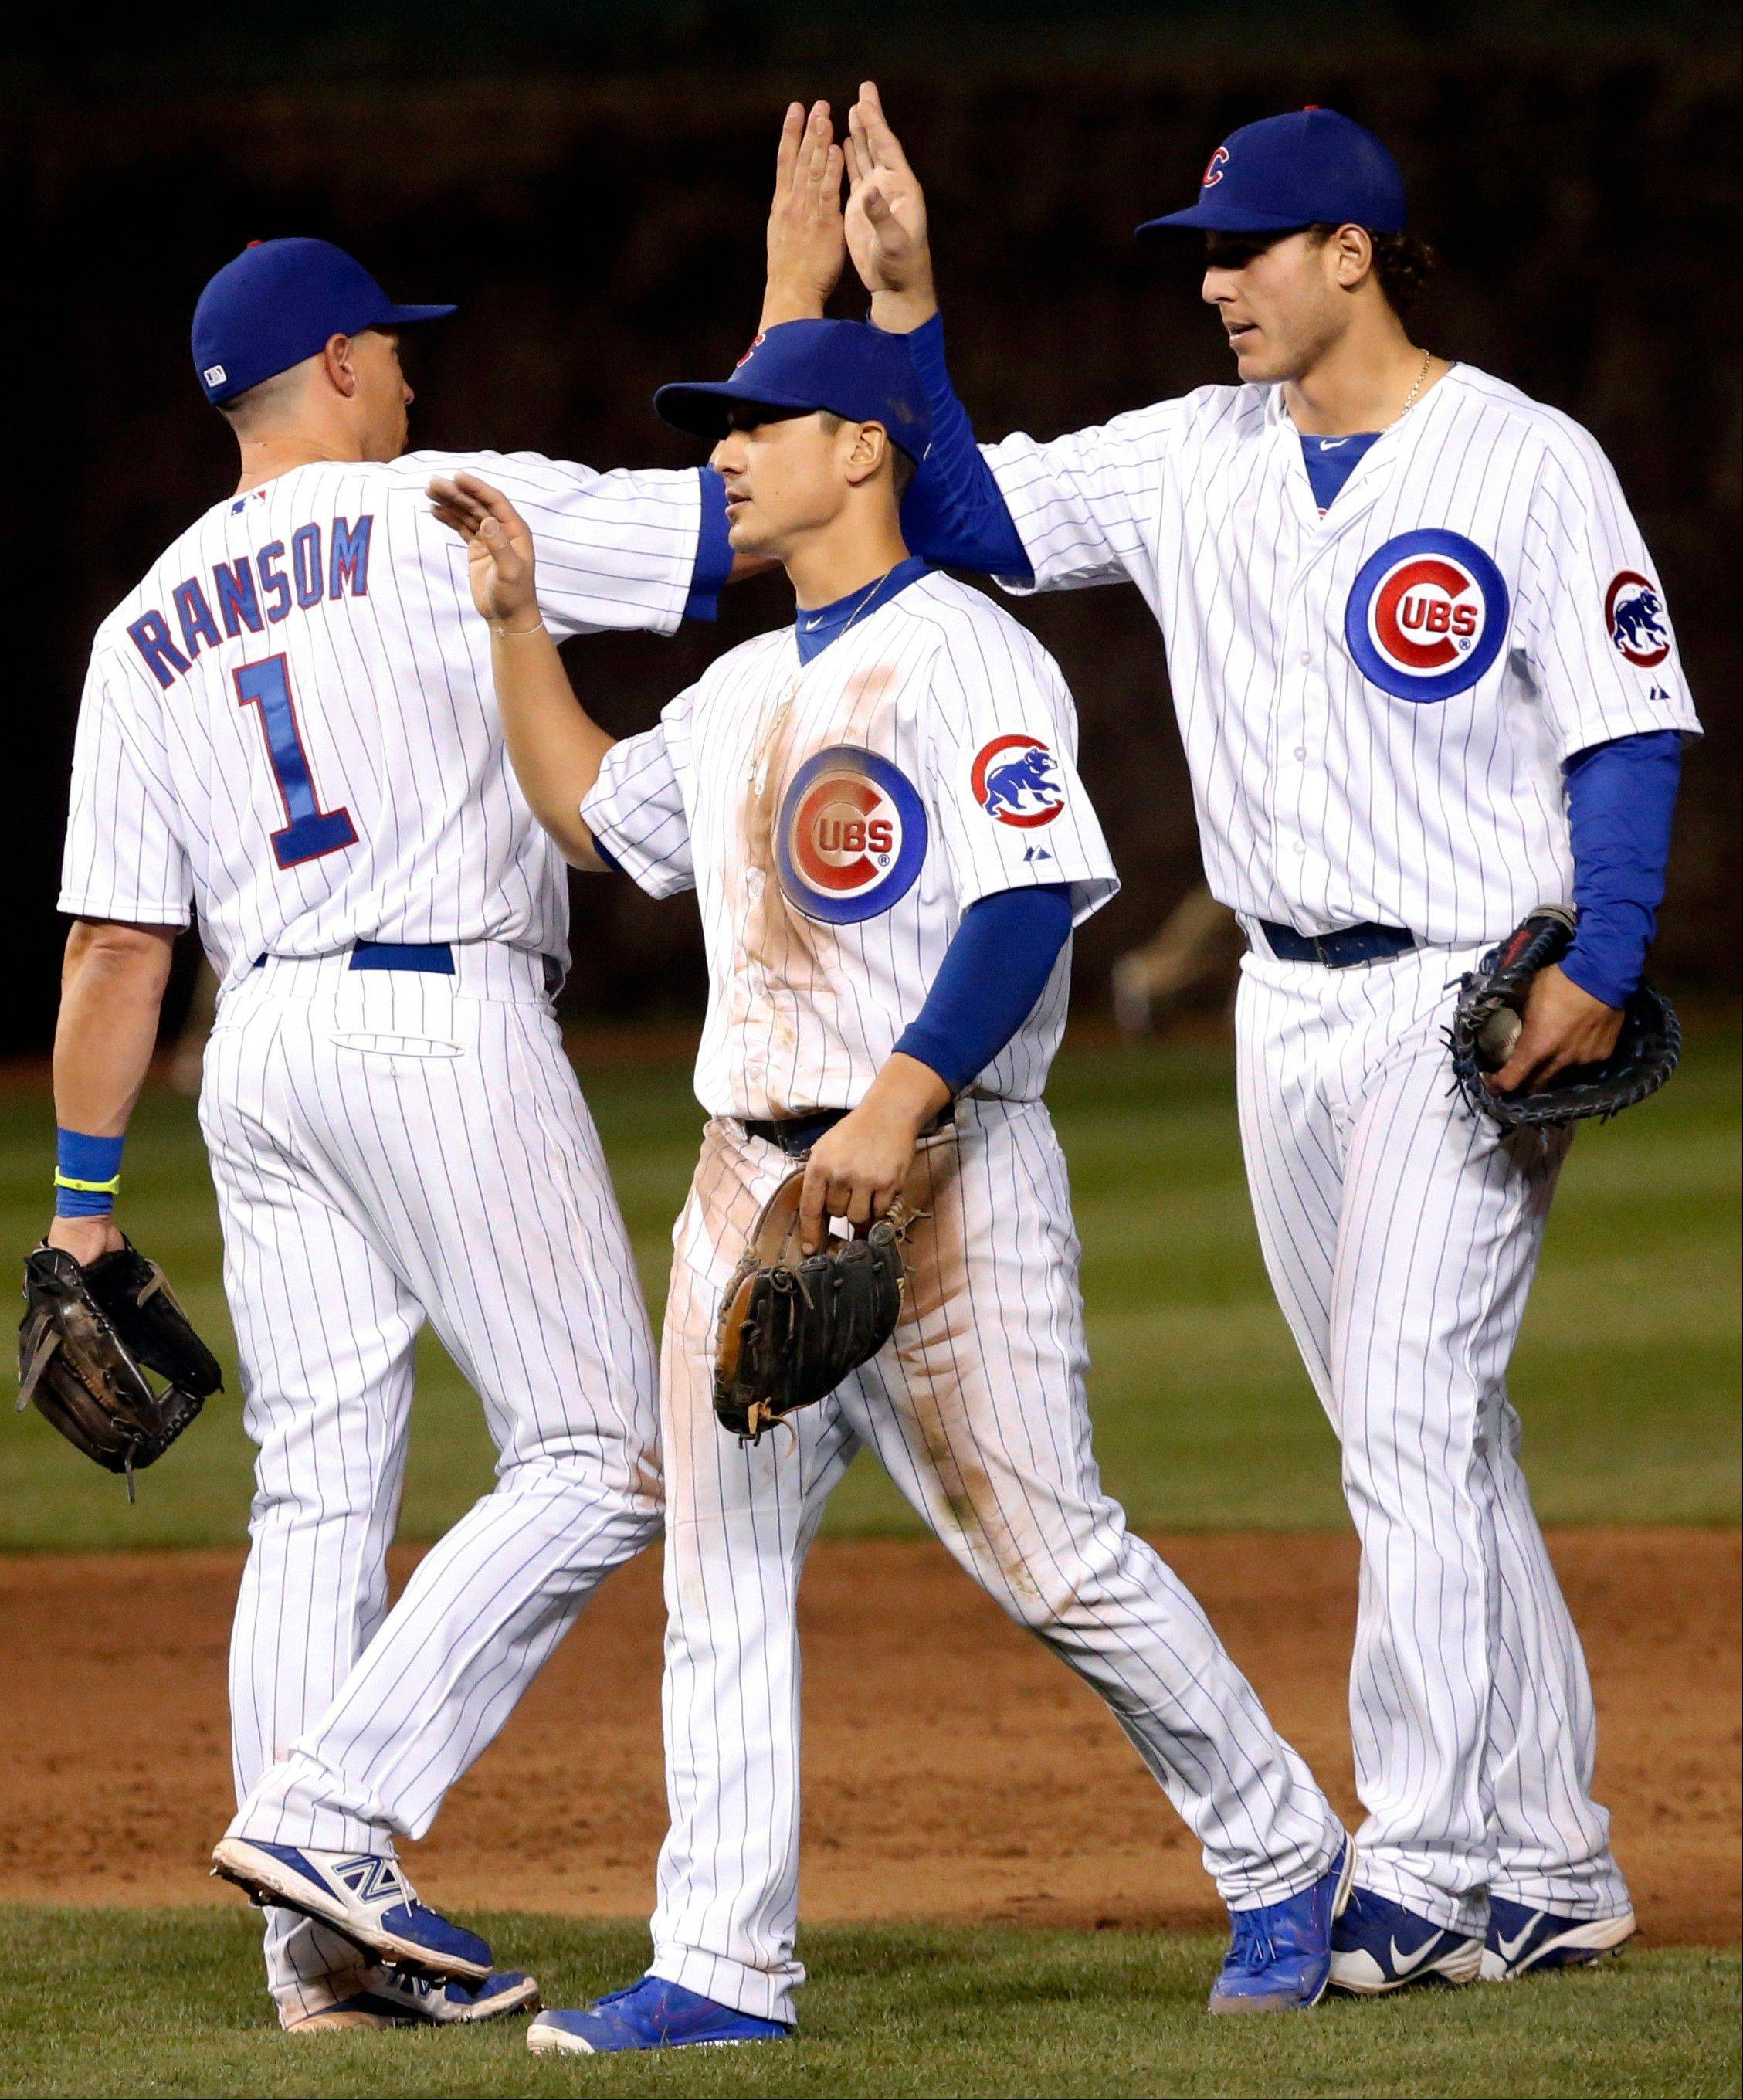 From left, Cubs third baseman Cody Ransom, second baseman Darwin Barney and first baseman Anthony Rizzo celebrate Monday night after Kevin Gregg picked up his fourth save in as many chances.